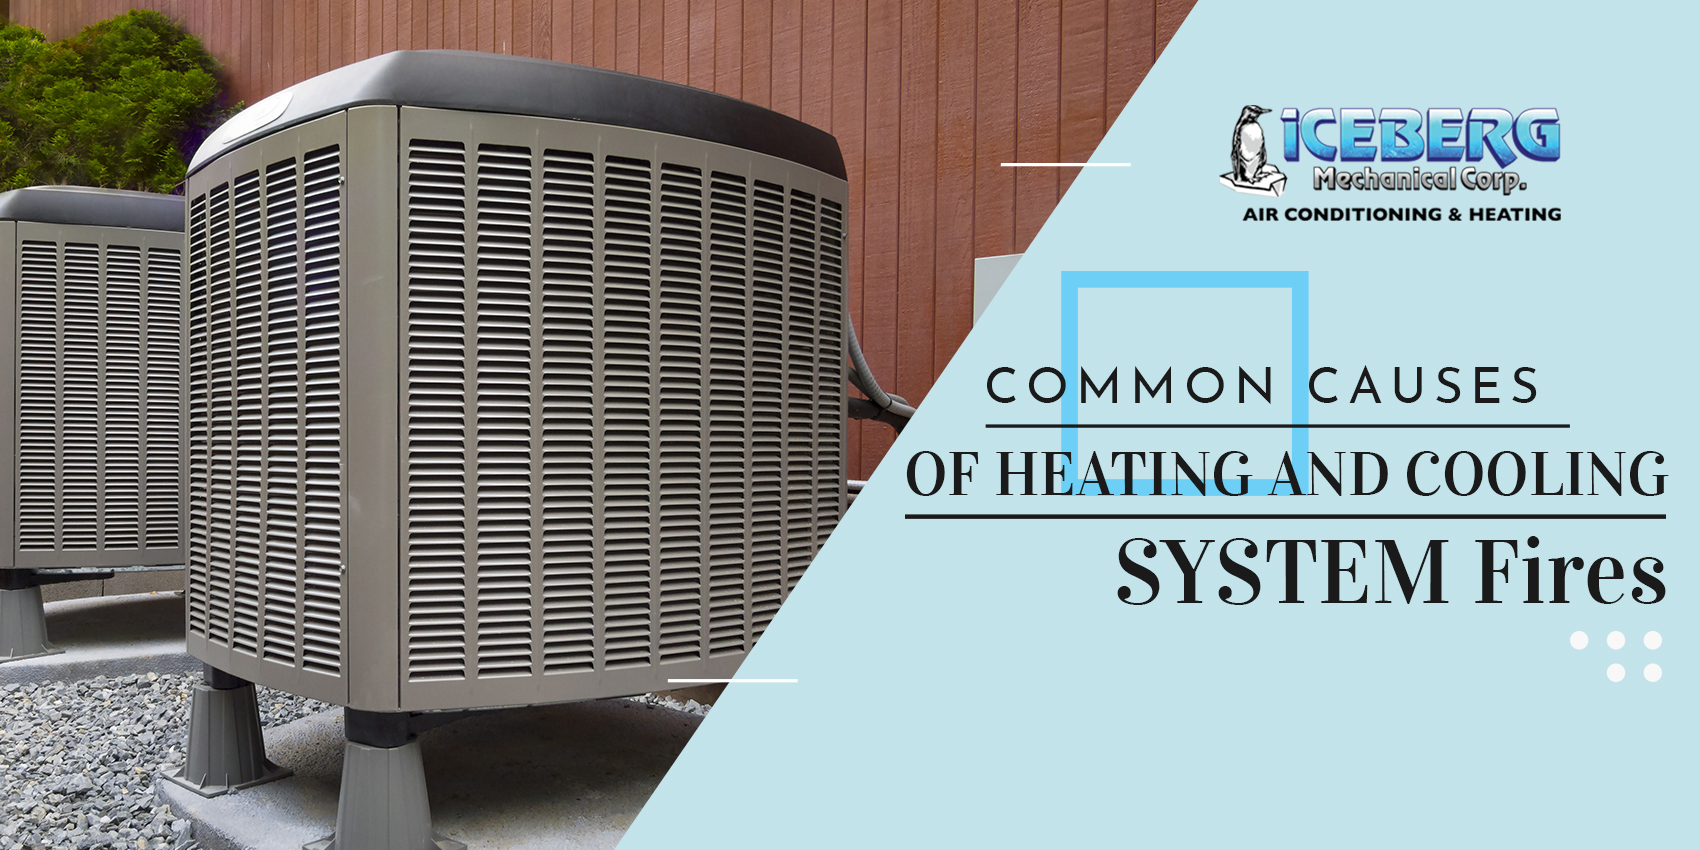 Common Causes of Heating and Cooling System Fires